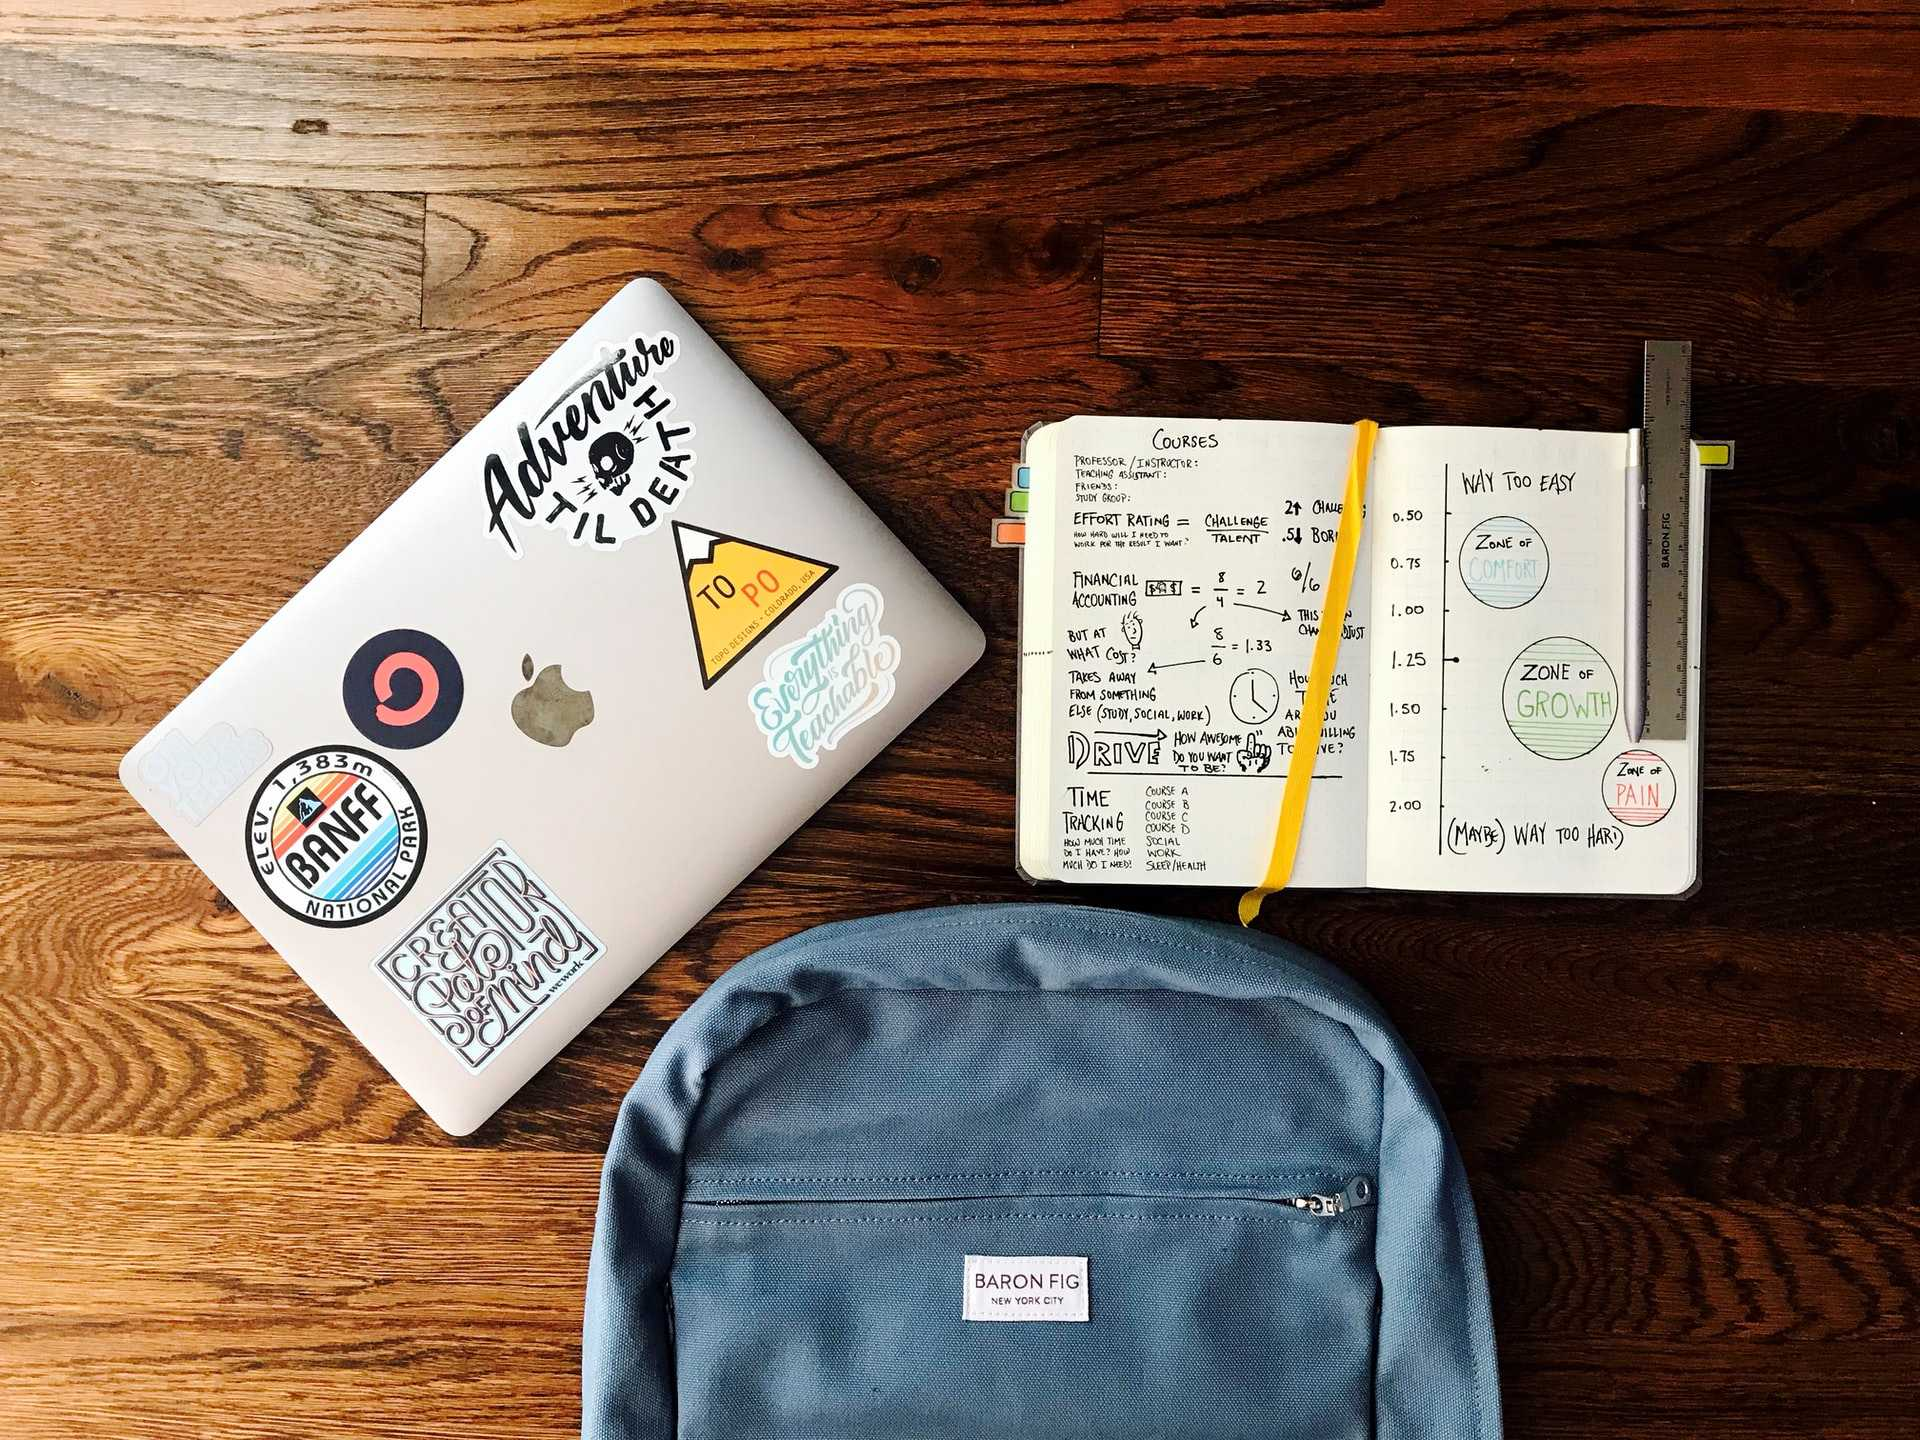 backpack, latptop, and open notebook from above